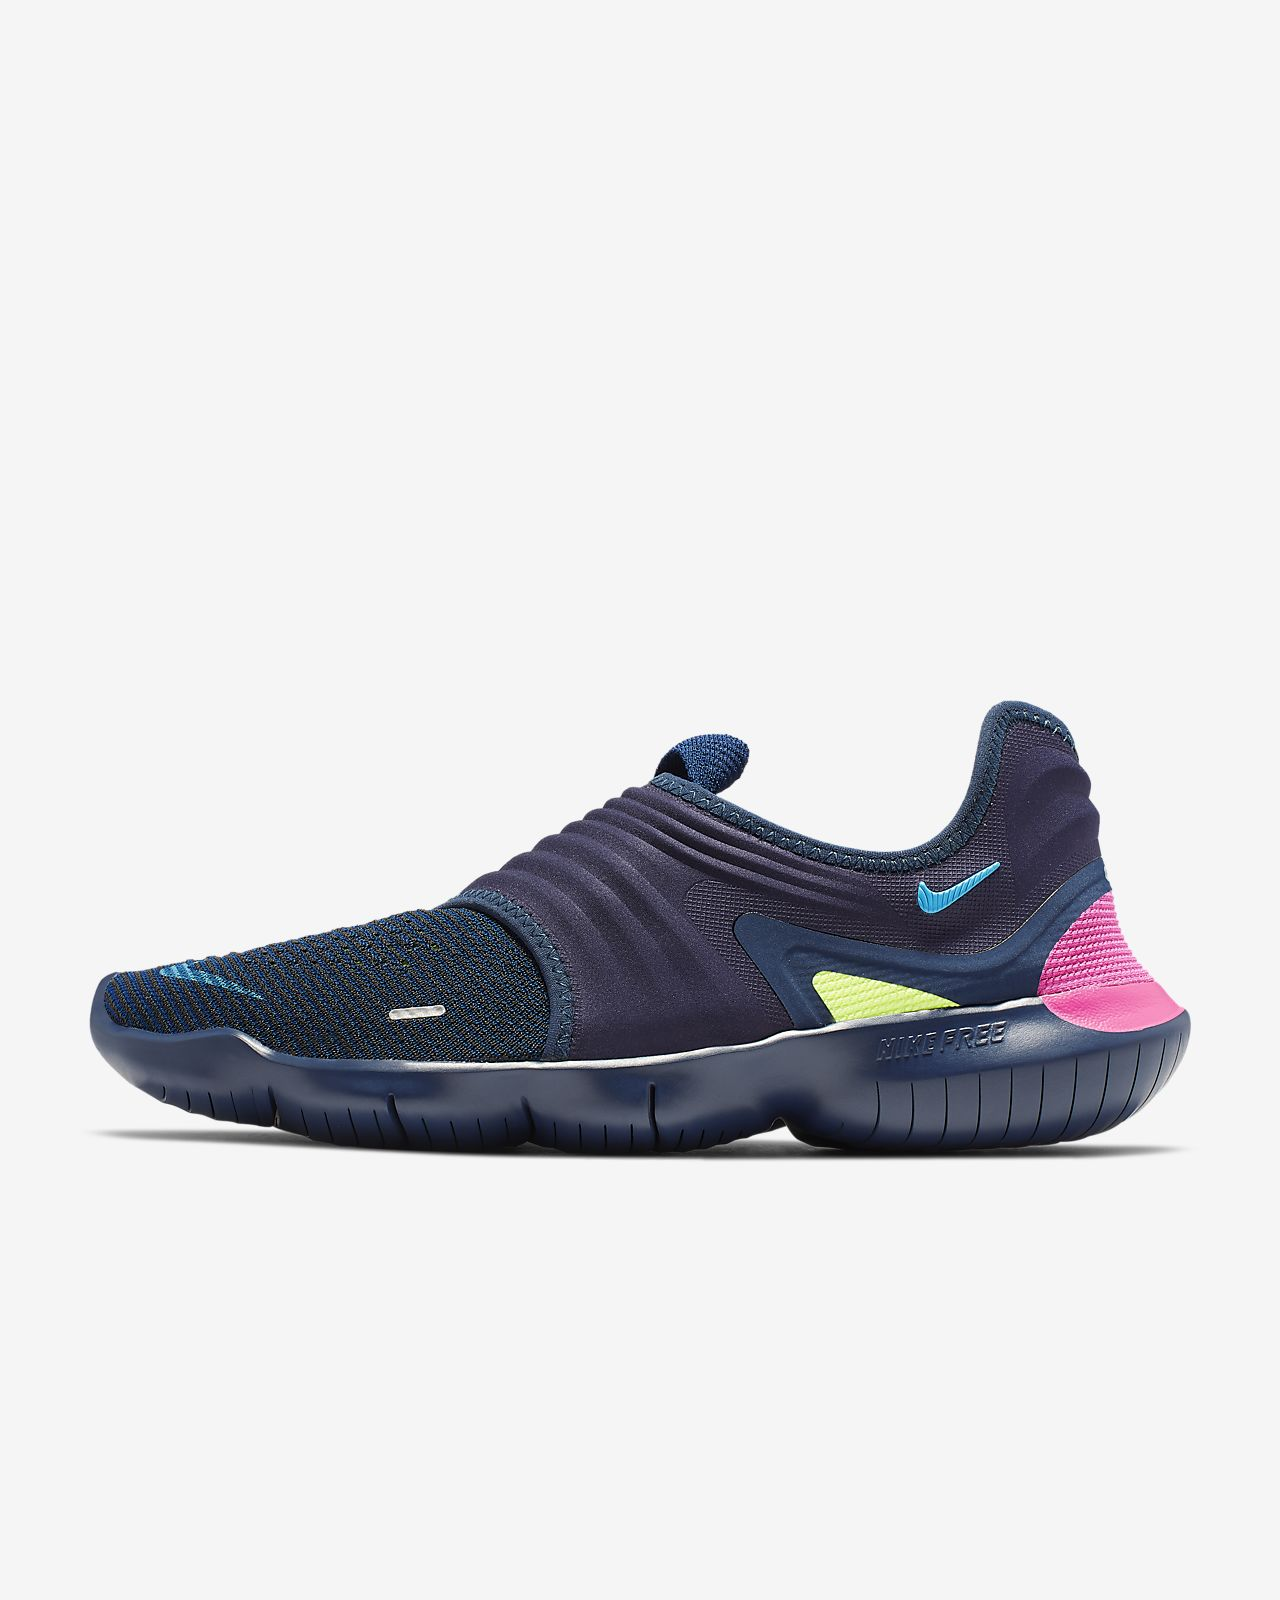 uk availability a1421 6829a ... Chaussure de running Nike Free RN Flyknit 3.0 pour Homme